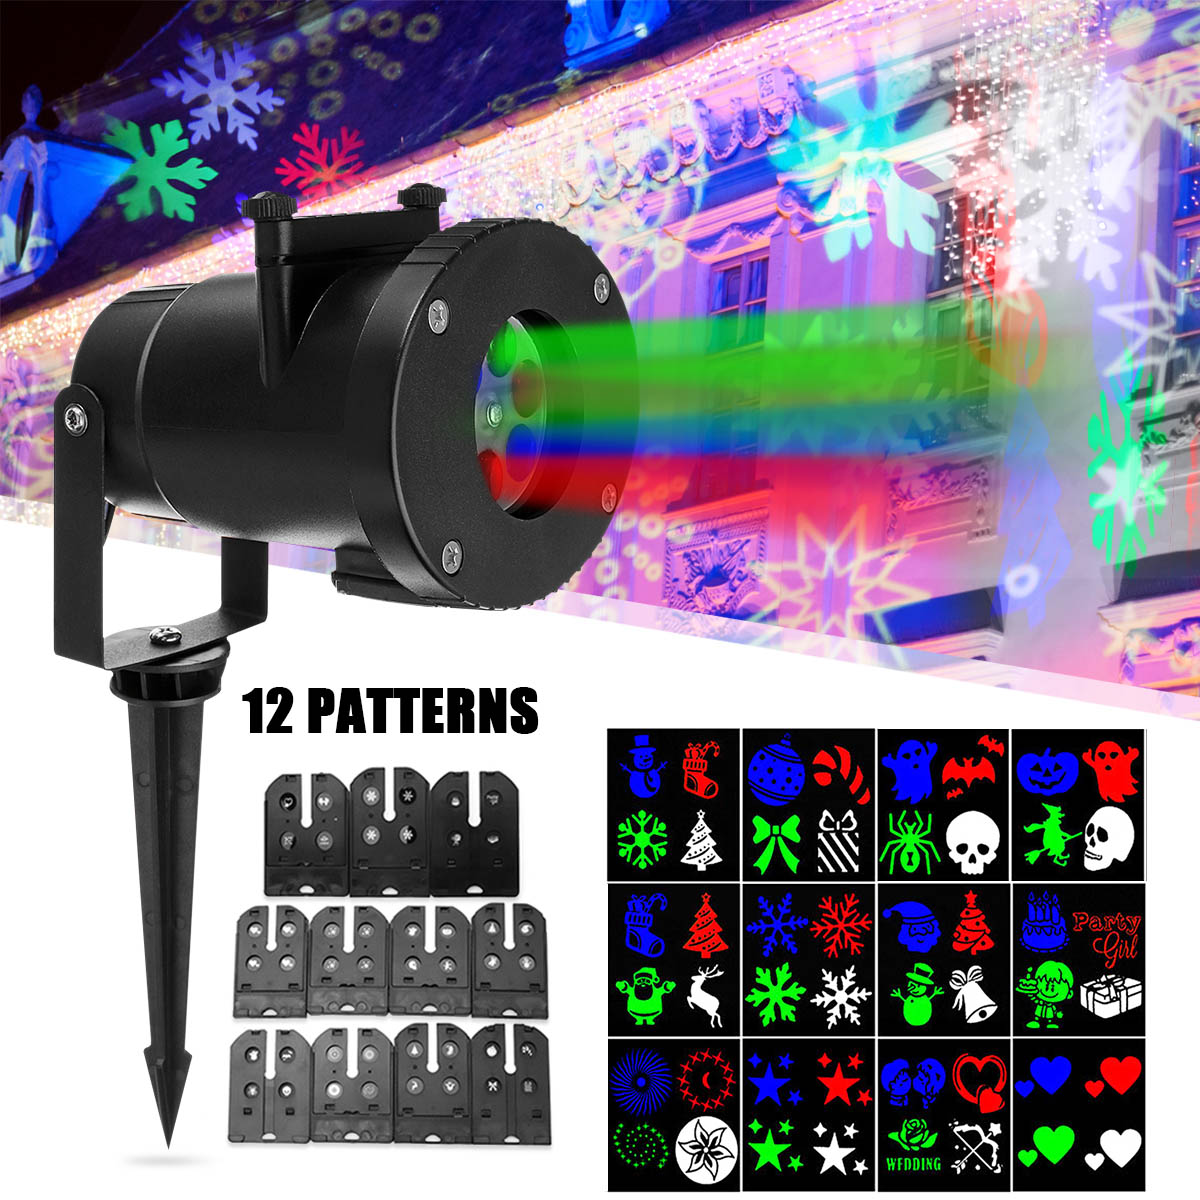 EU/US Plug 110-240V Festival Christmas Film Projector Lamp Upgrade With White Light Beads Holiday Lighting 275*135mm